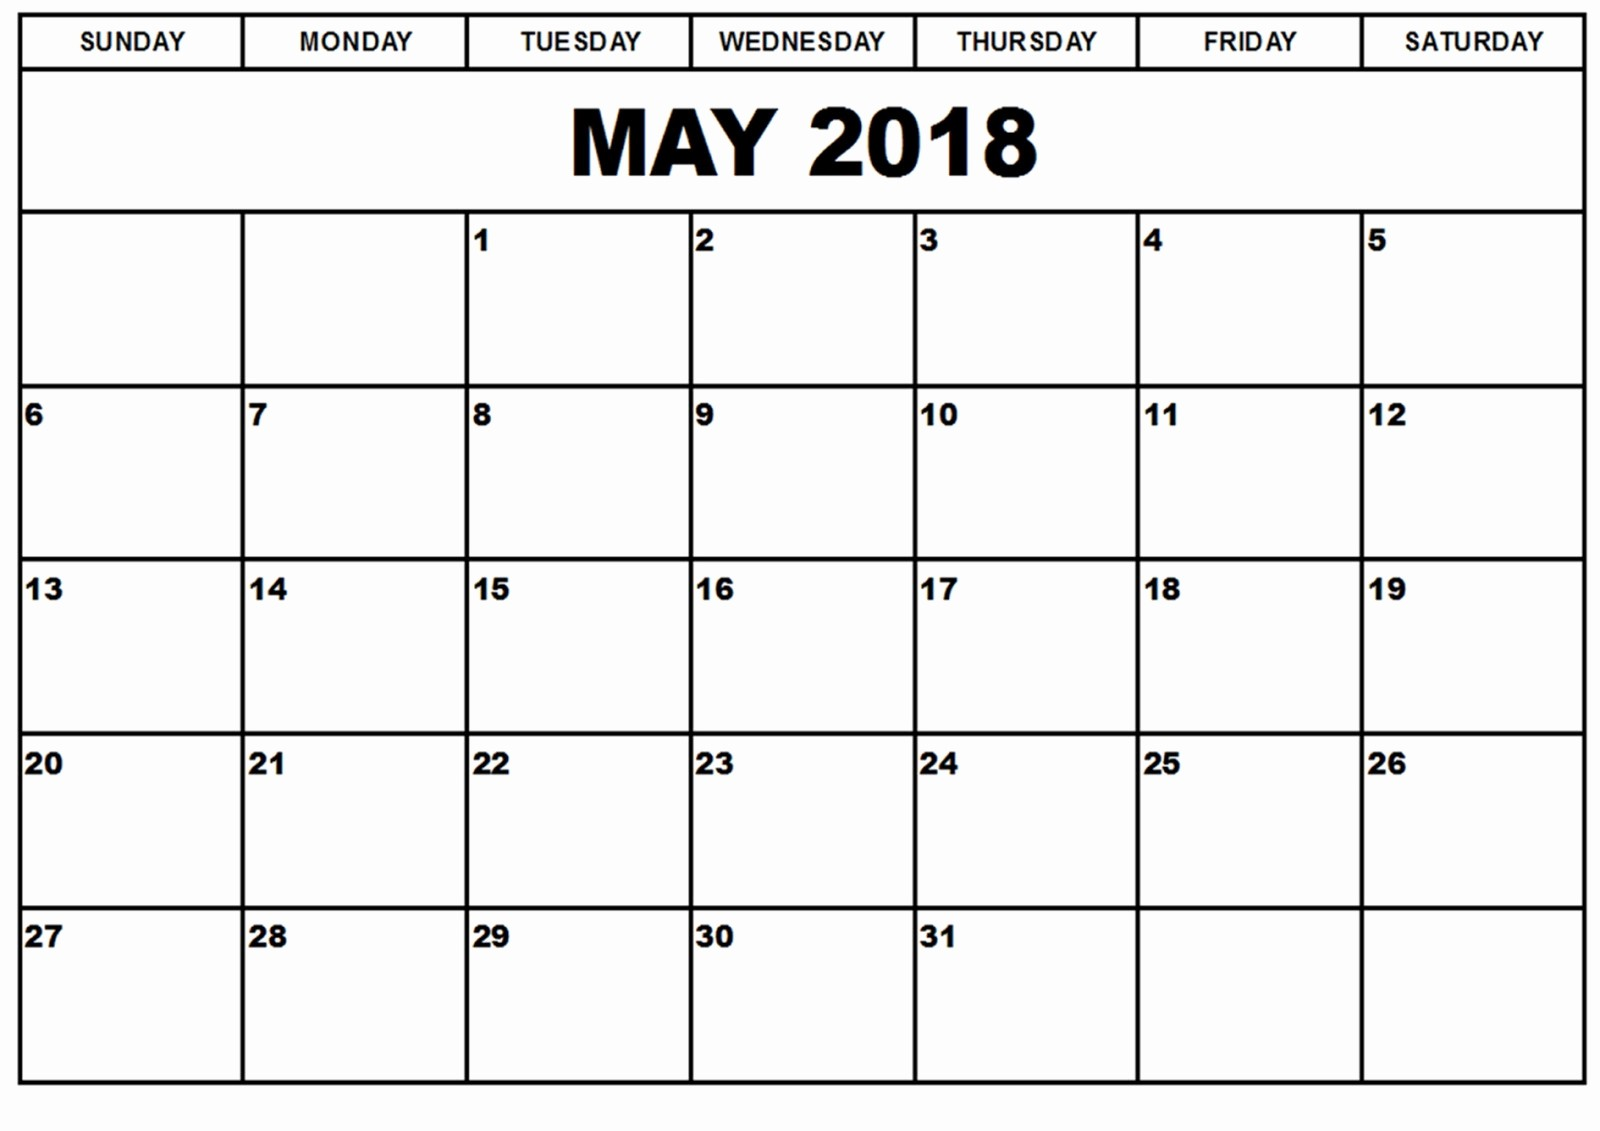 Microsoft Word Calendar Template 2018 Unique Printable May 2018 Calendar Word